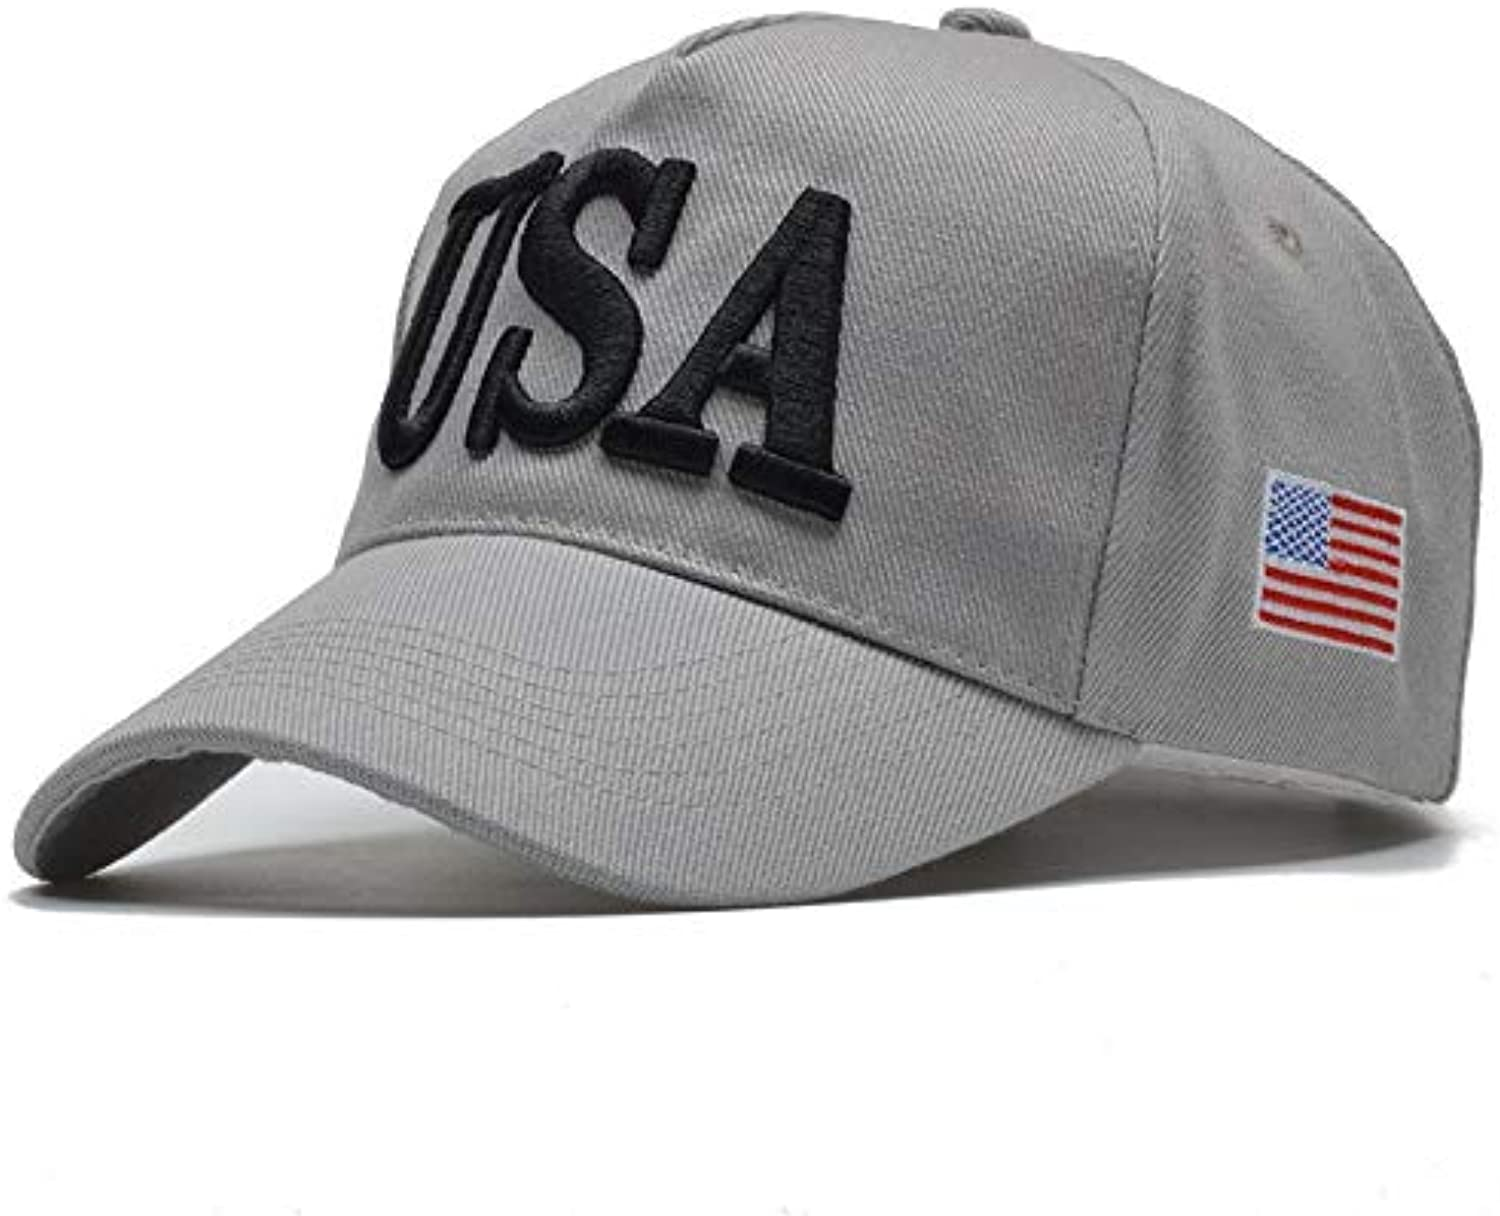 AAMOUSE Baseball Cap New USA Letter Fitted Hats Baseball Cap Women Men Dad Hat for Adult Hip Hop Snapback Caps Gorras